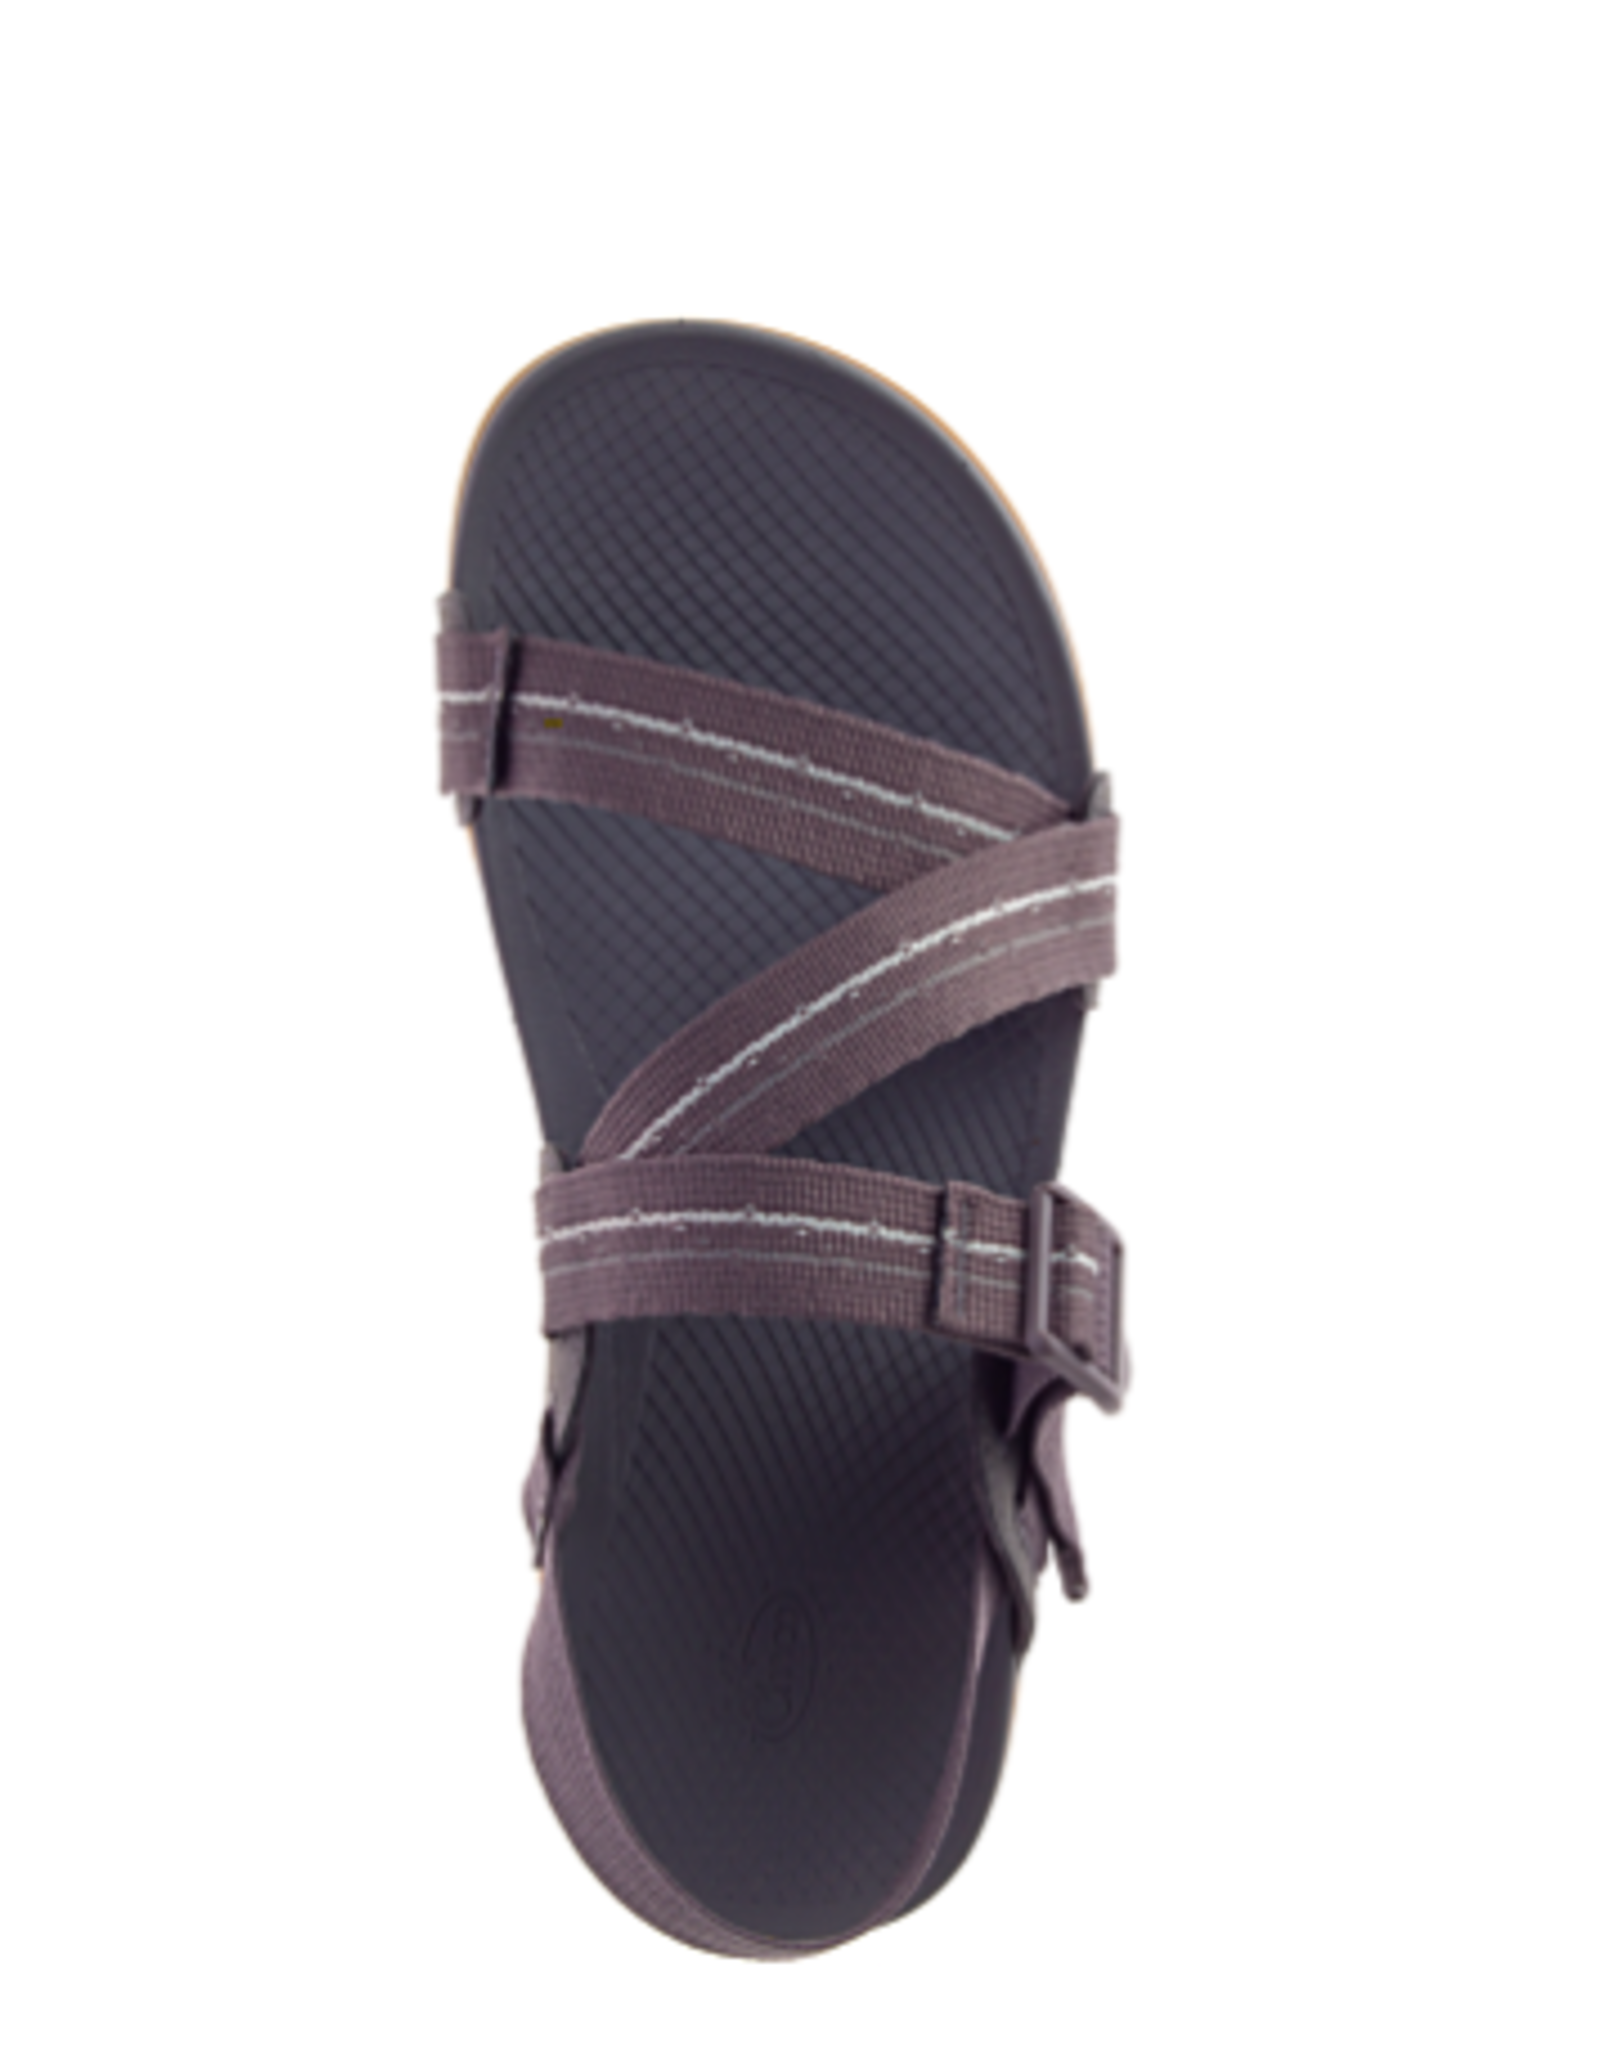 M Lowdown Sandal -